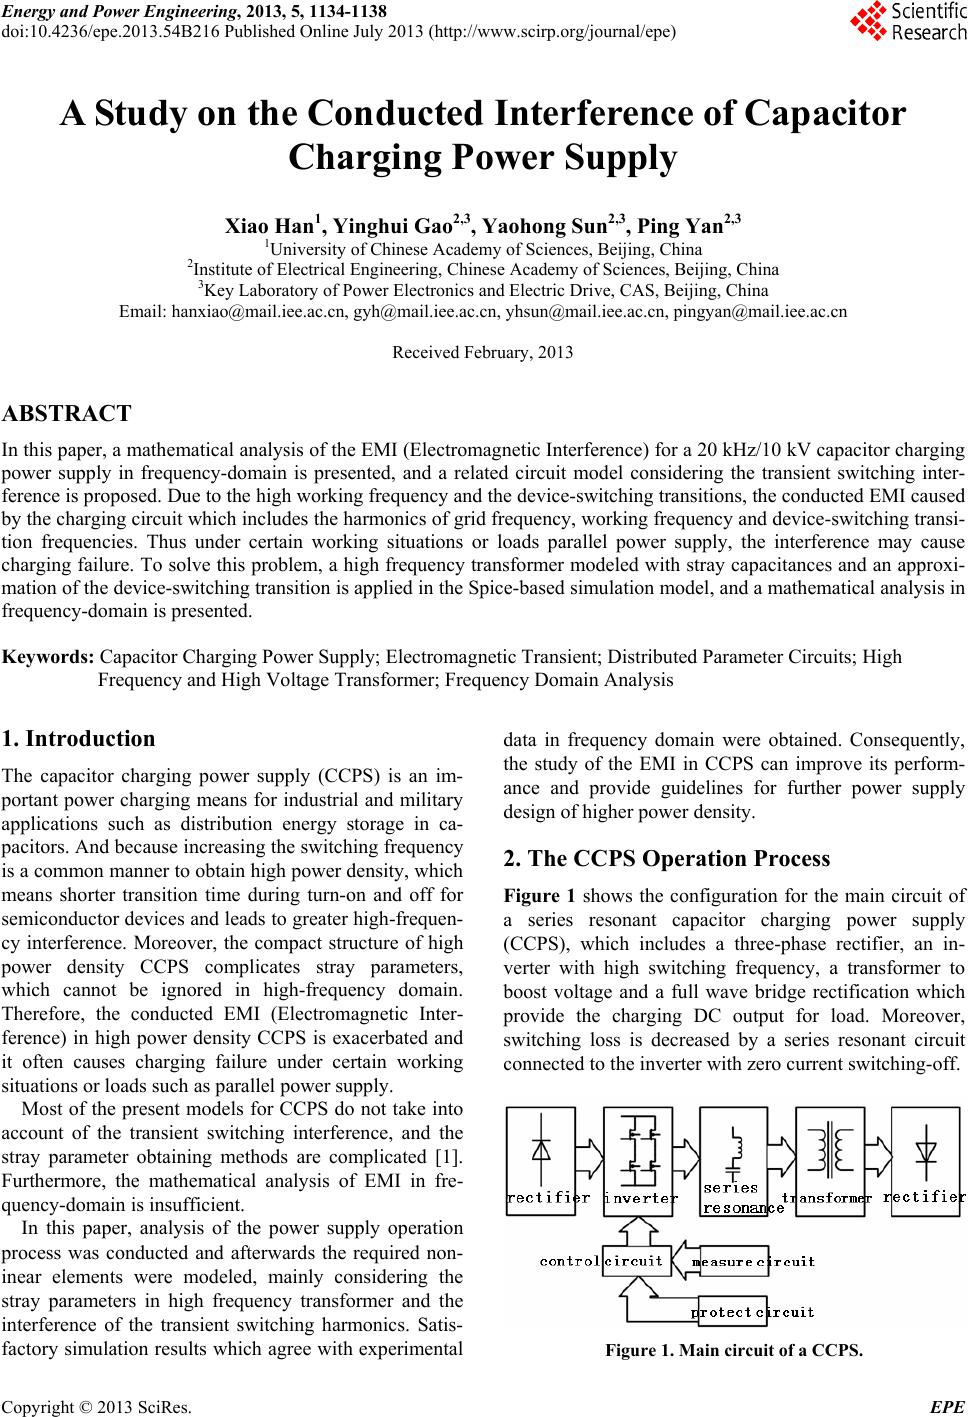 A Study On The Conducted Interference Of Capacitor Charging Power Circuit Energy And Engineering 2013 5 1134 1138